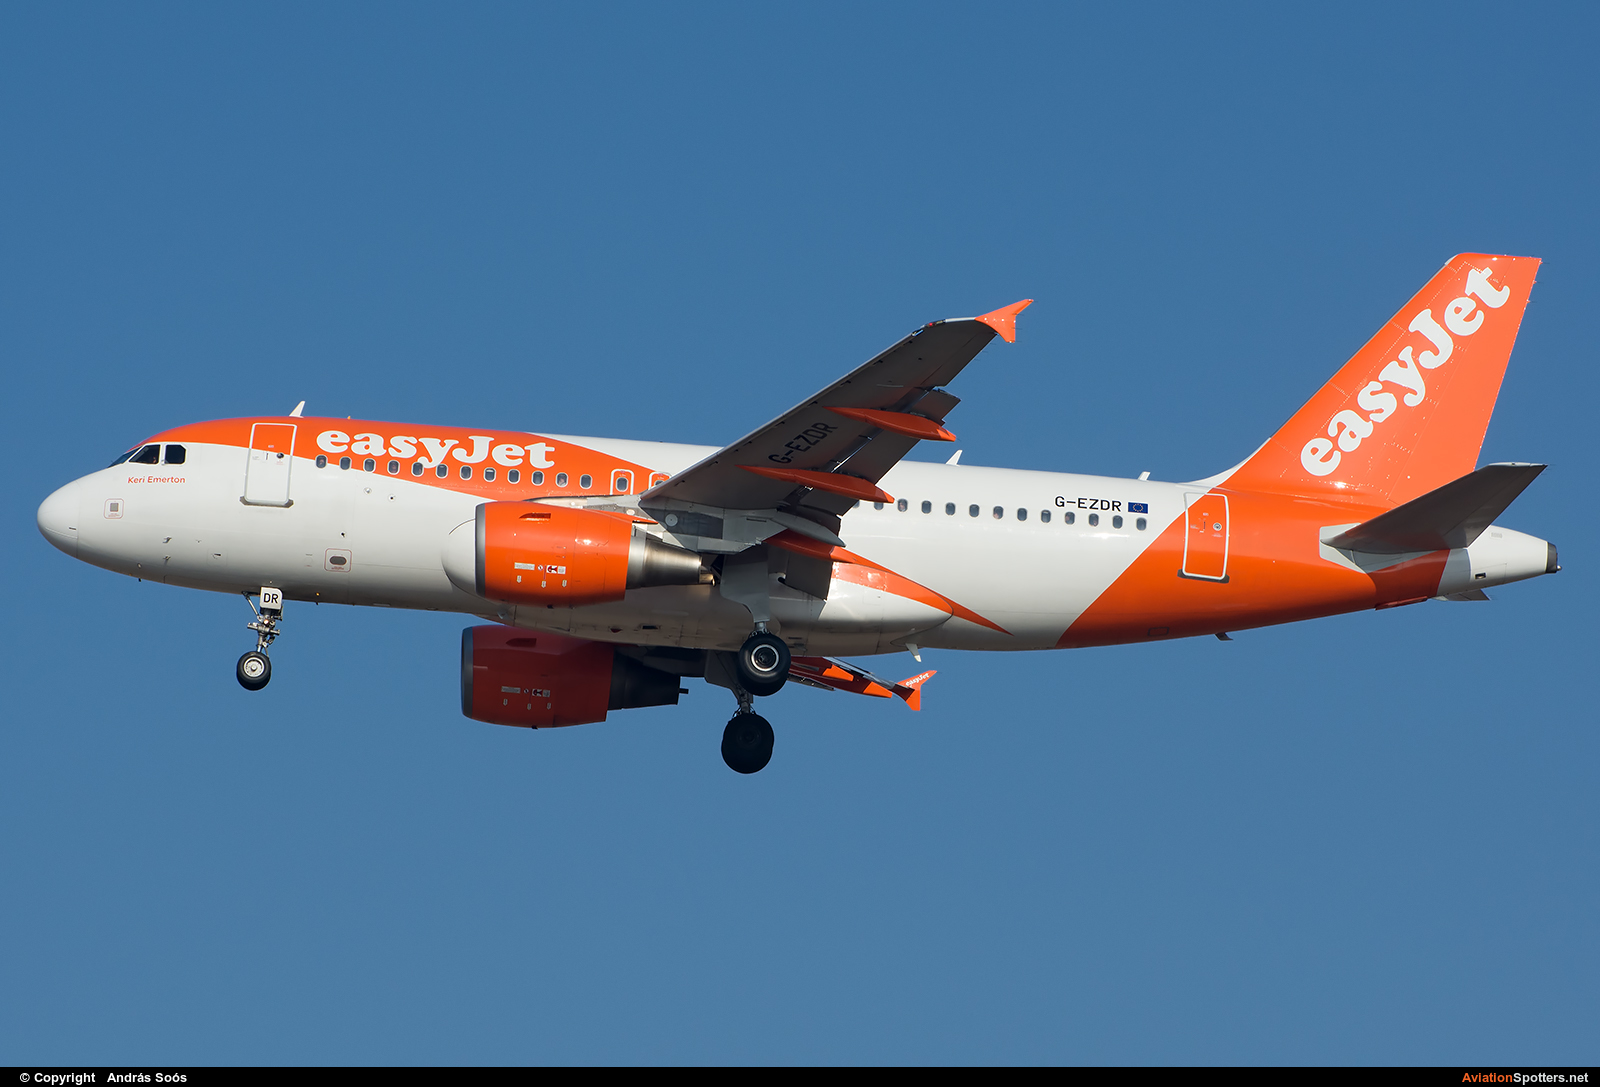 easyJet  -  A319-111  (G-EZDR) By András Soós (sas1965)